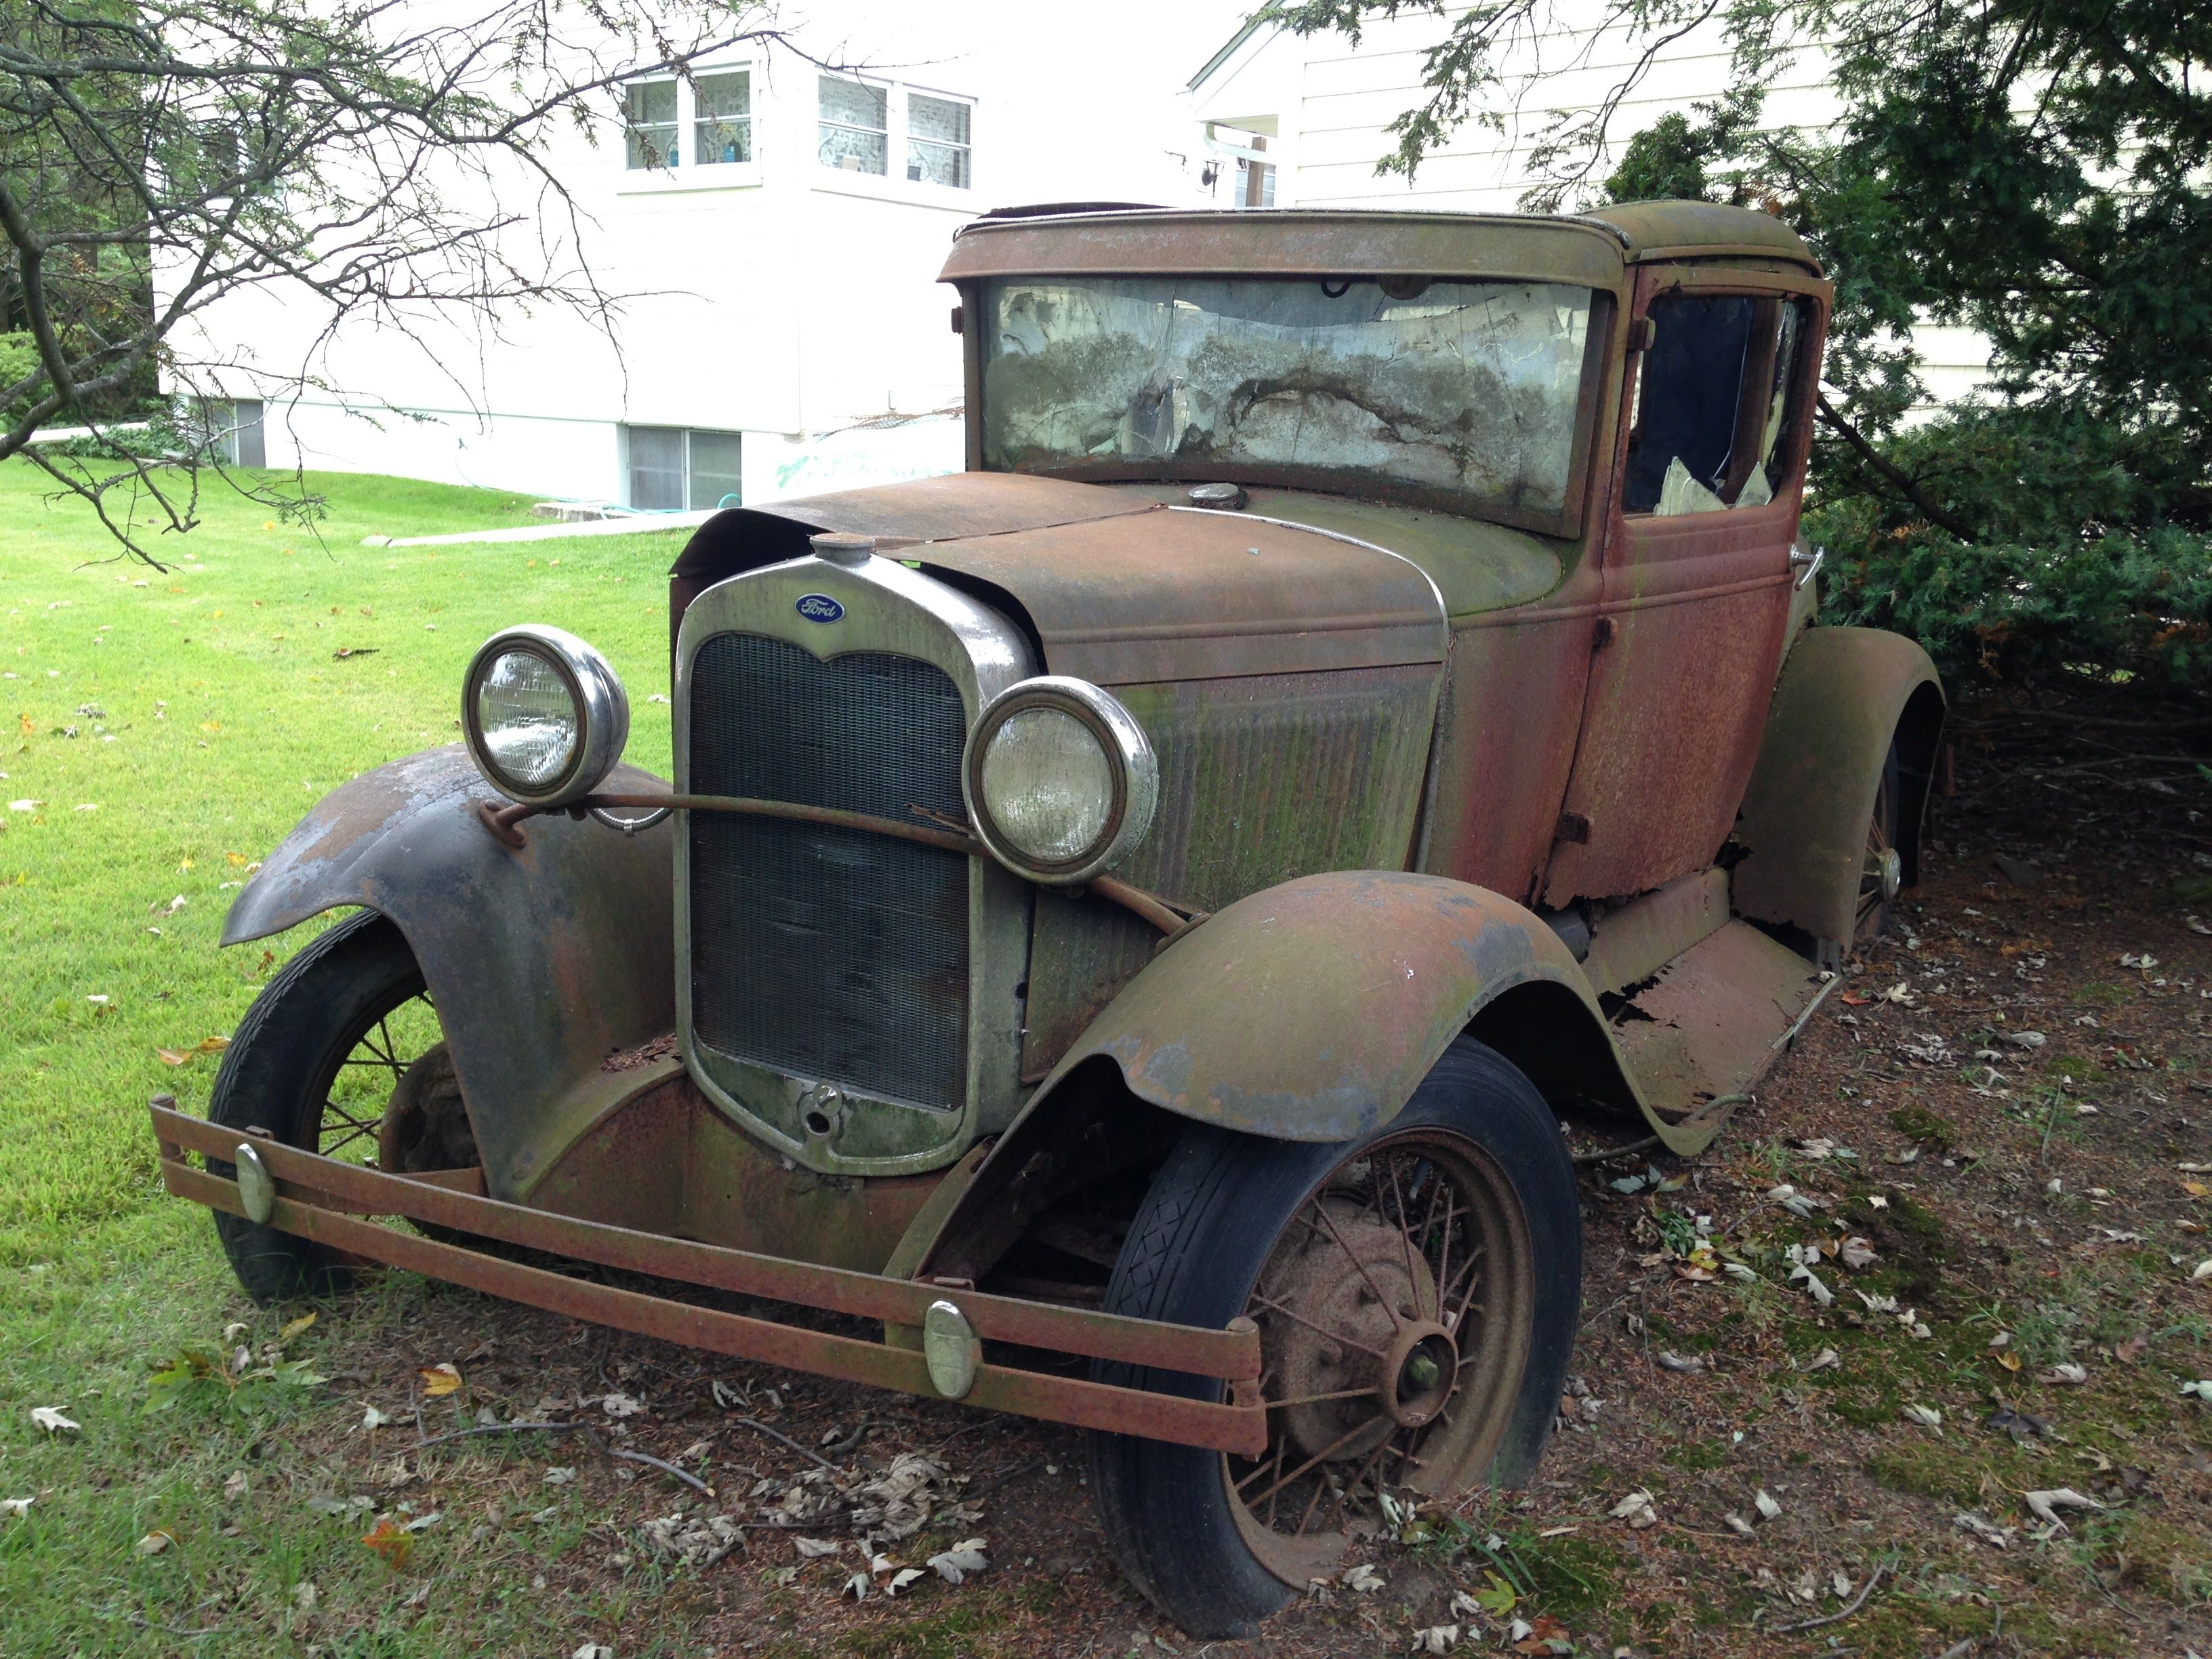 Pin by Jim sharp on Old rusty wrecks forgotten cars trucks others ...